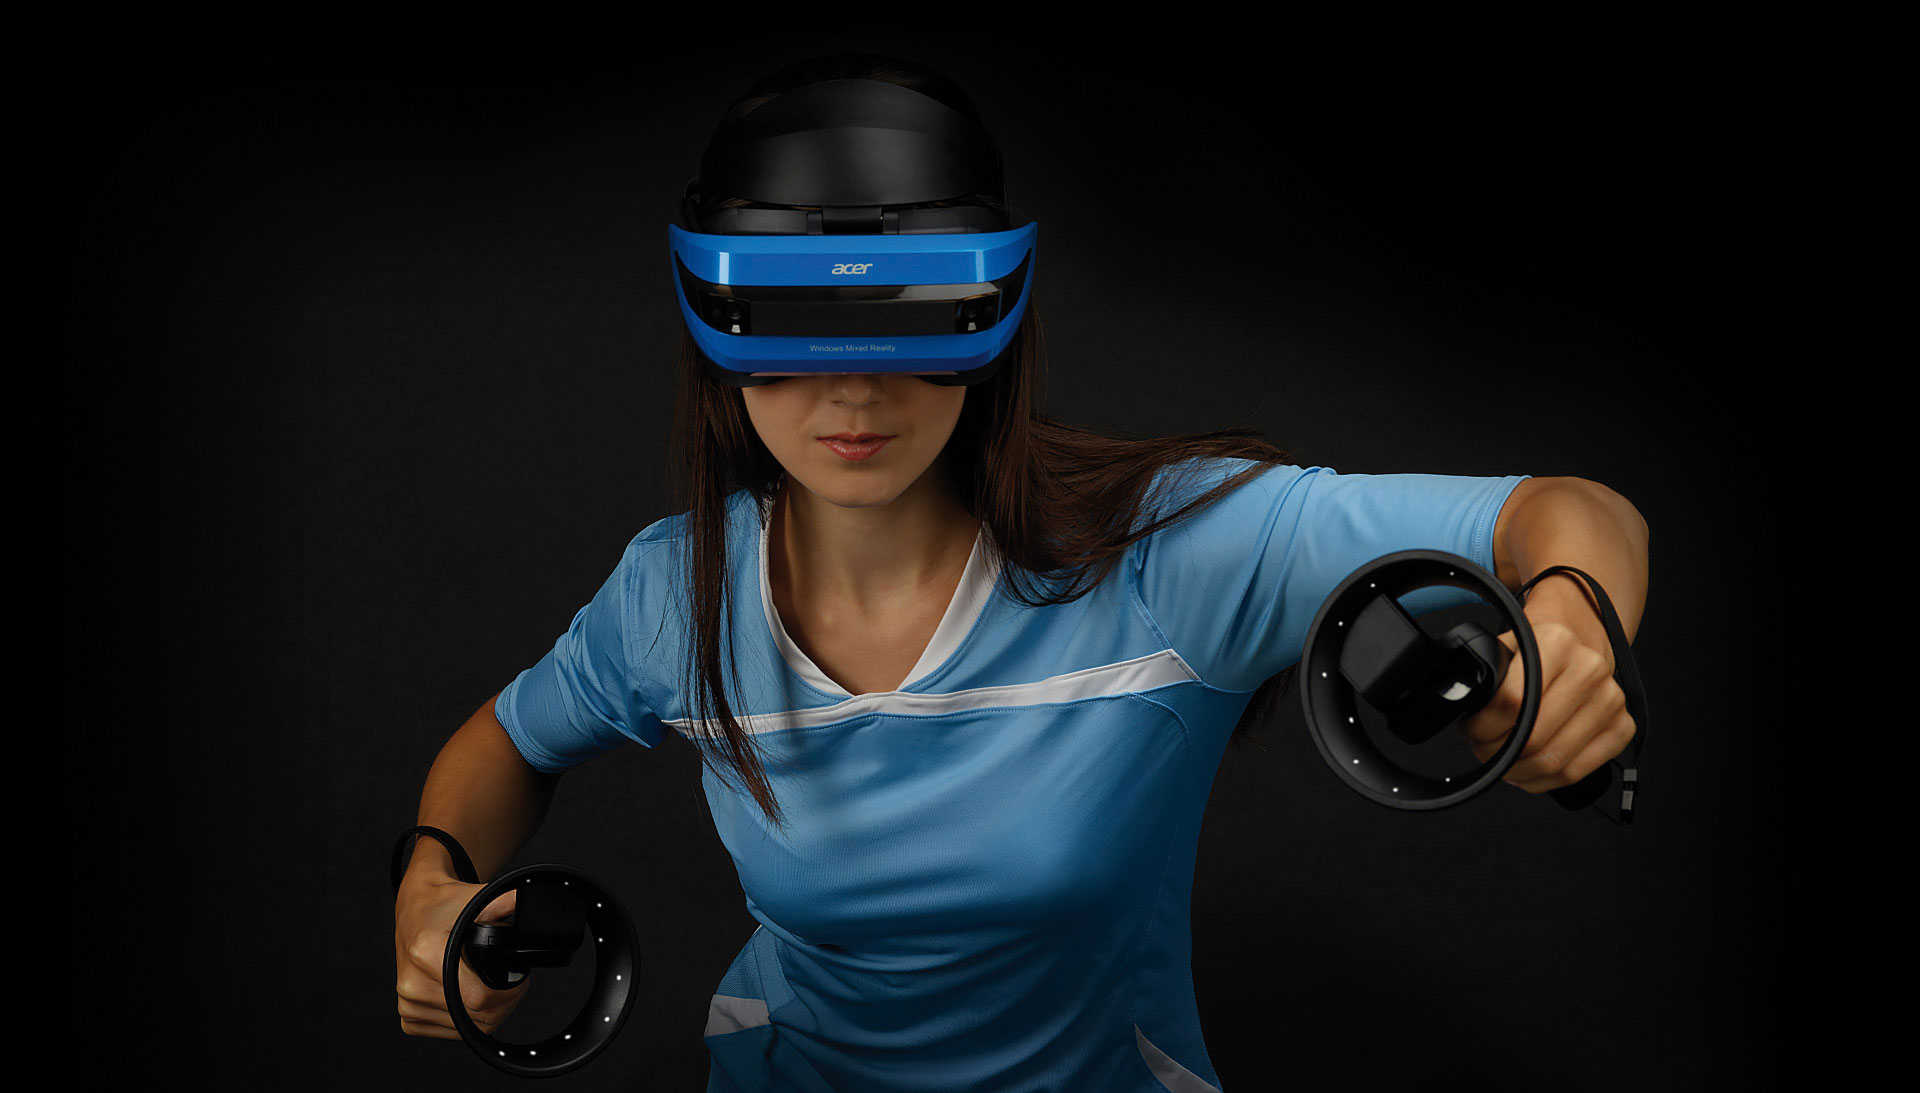 Getestet: Acers Mixed Reality VR Headset